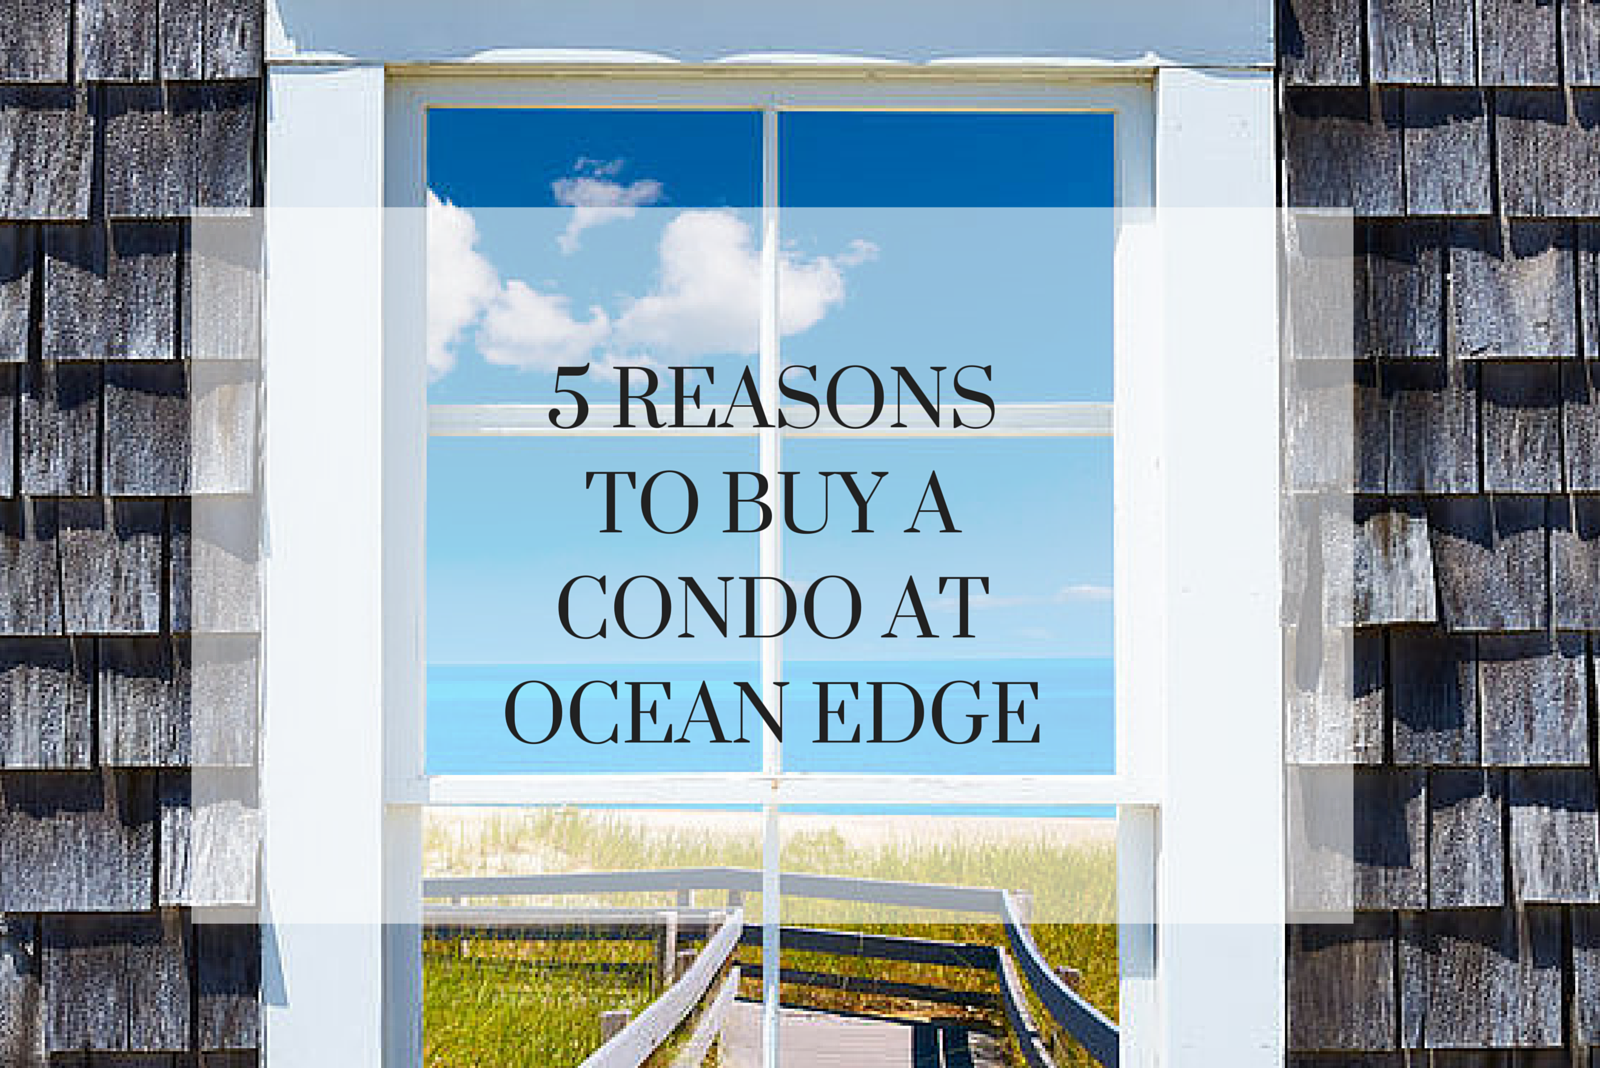 5 Reasons to Buy a Condo at Ocean Edge